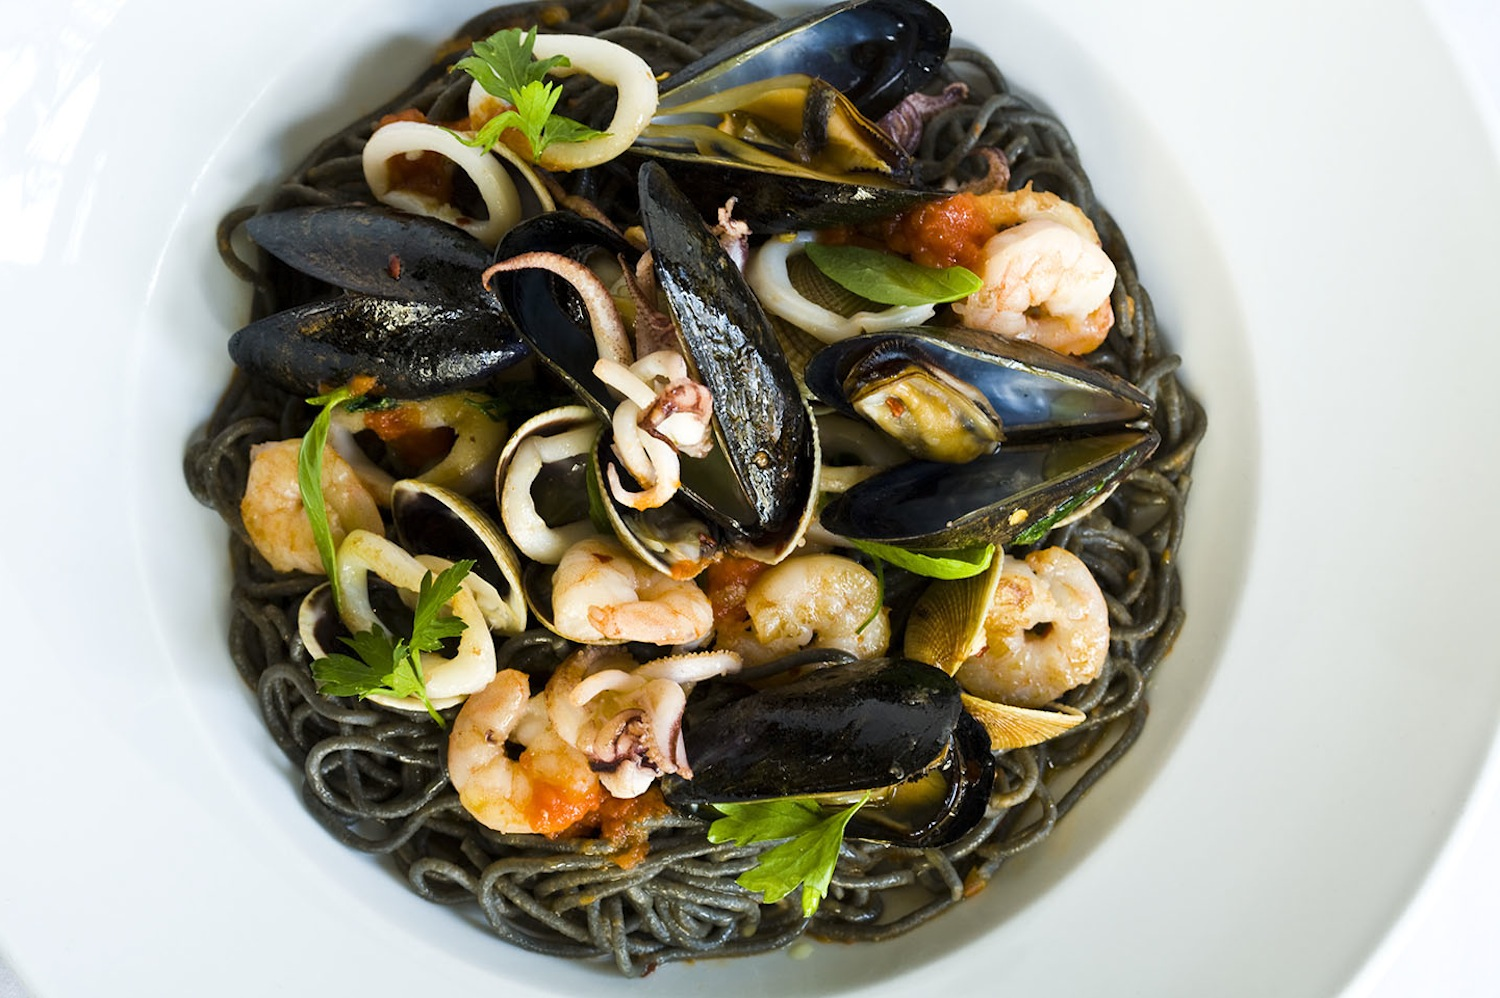 Nyc Event Catering - JPO Concepts - Squid Ink Pasta